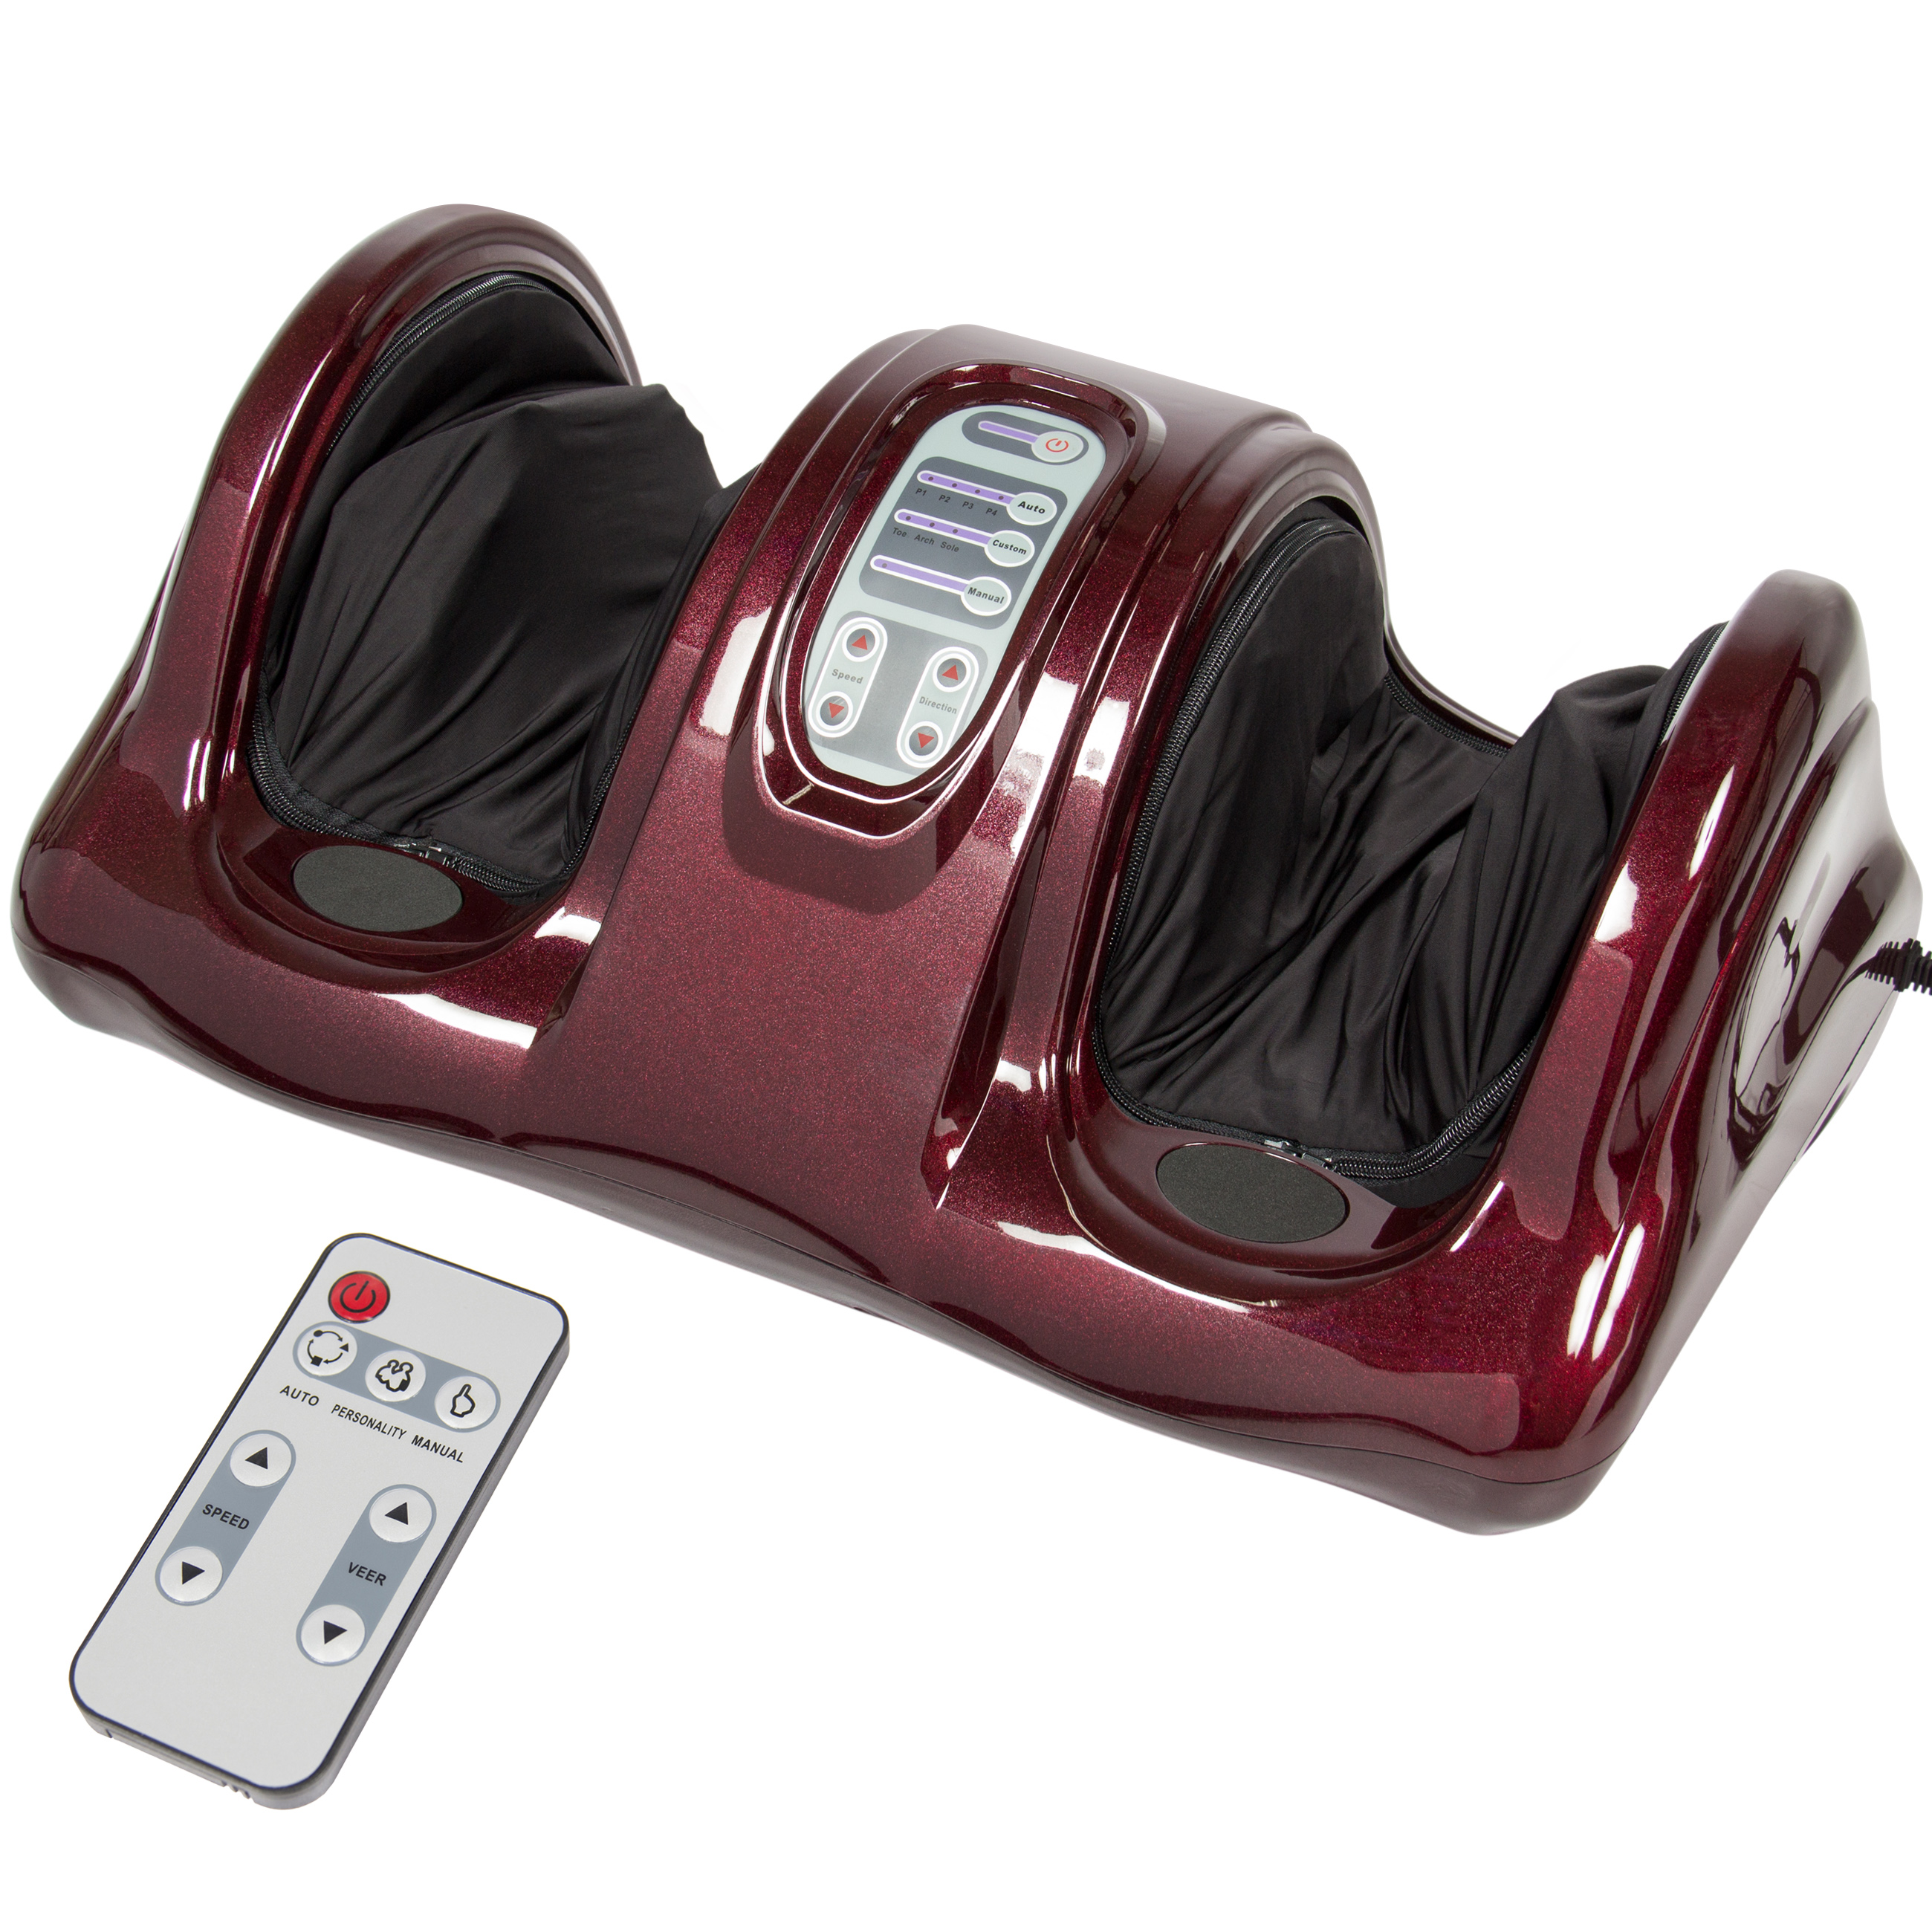 Best Choice Products Therapeutic Shiatsu Kneading and Rolling Compact Electric Foot Massager w/ Remote Control, 3 Modes - Burgundy